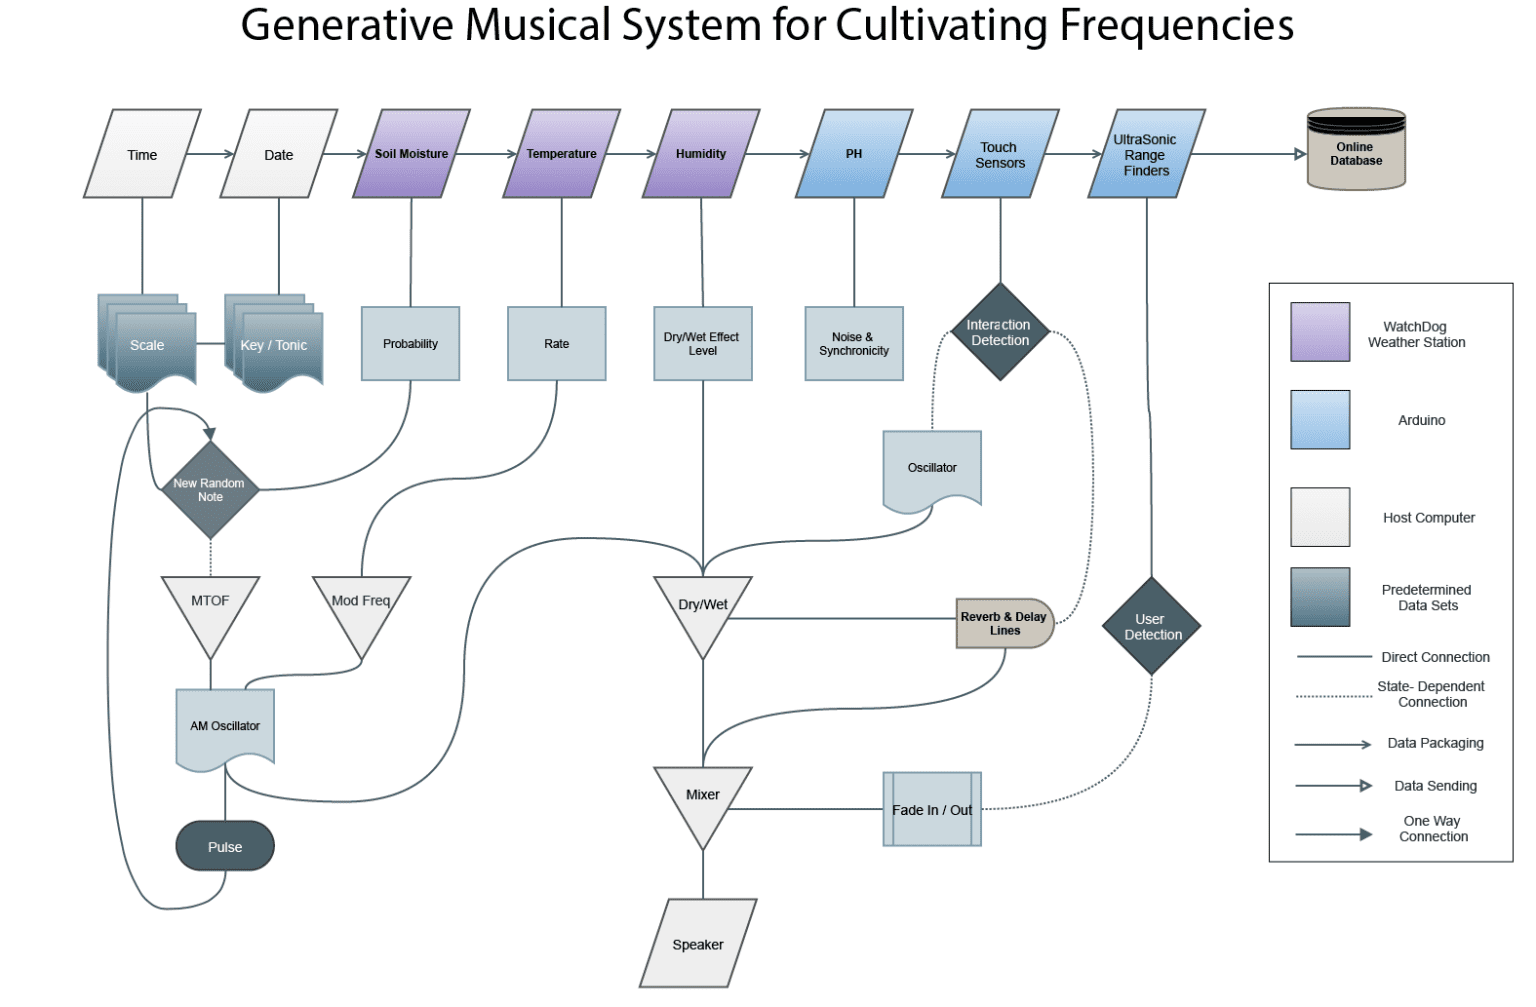 Cultivating Frequencies